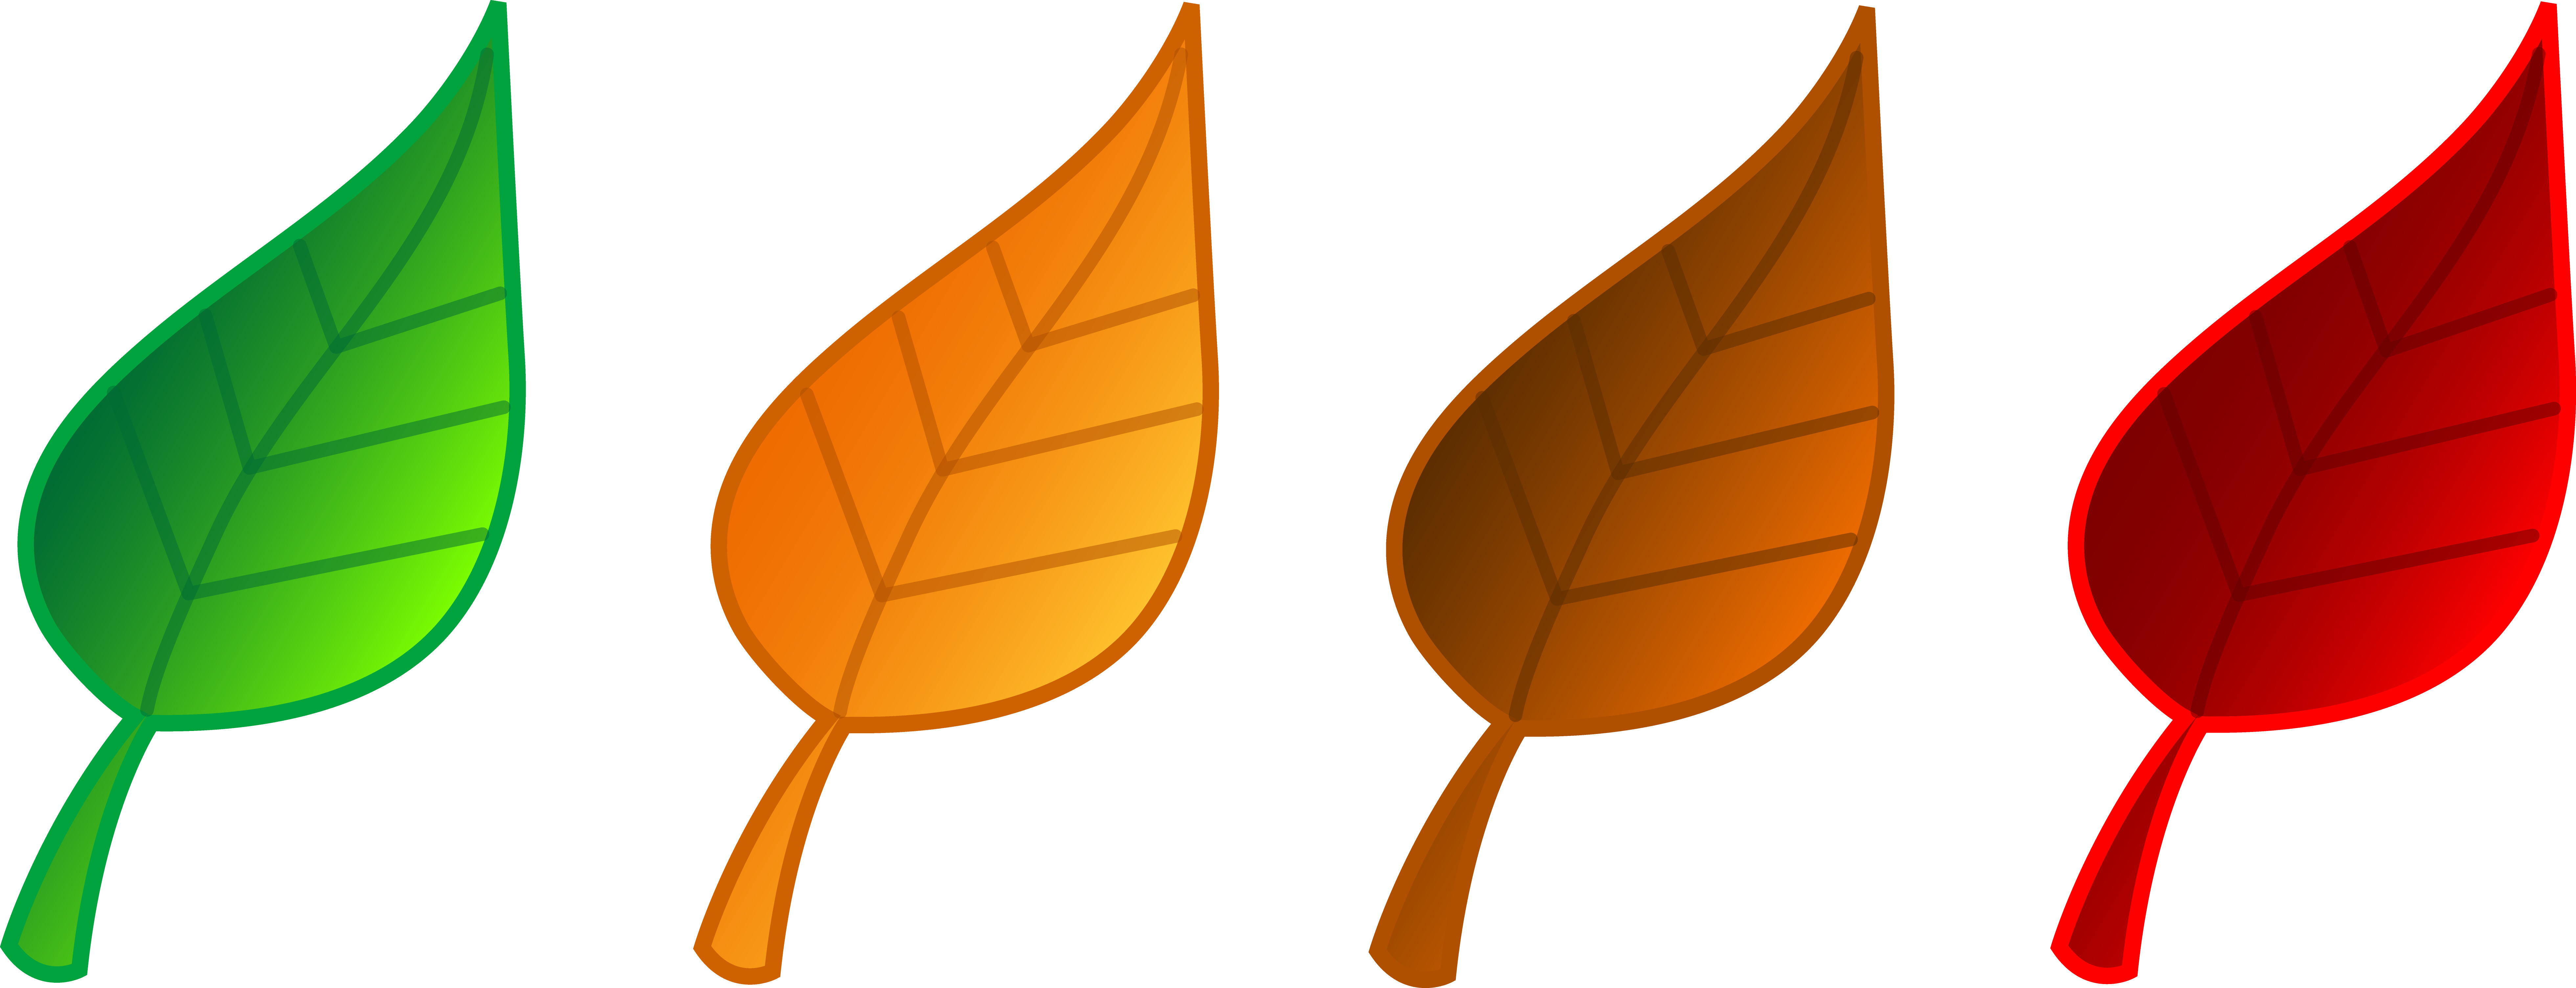 7840x3006 Fall Leaf Clip Art 4